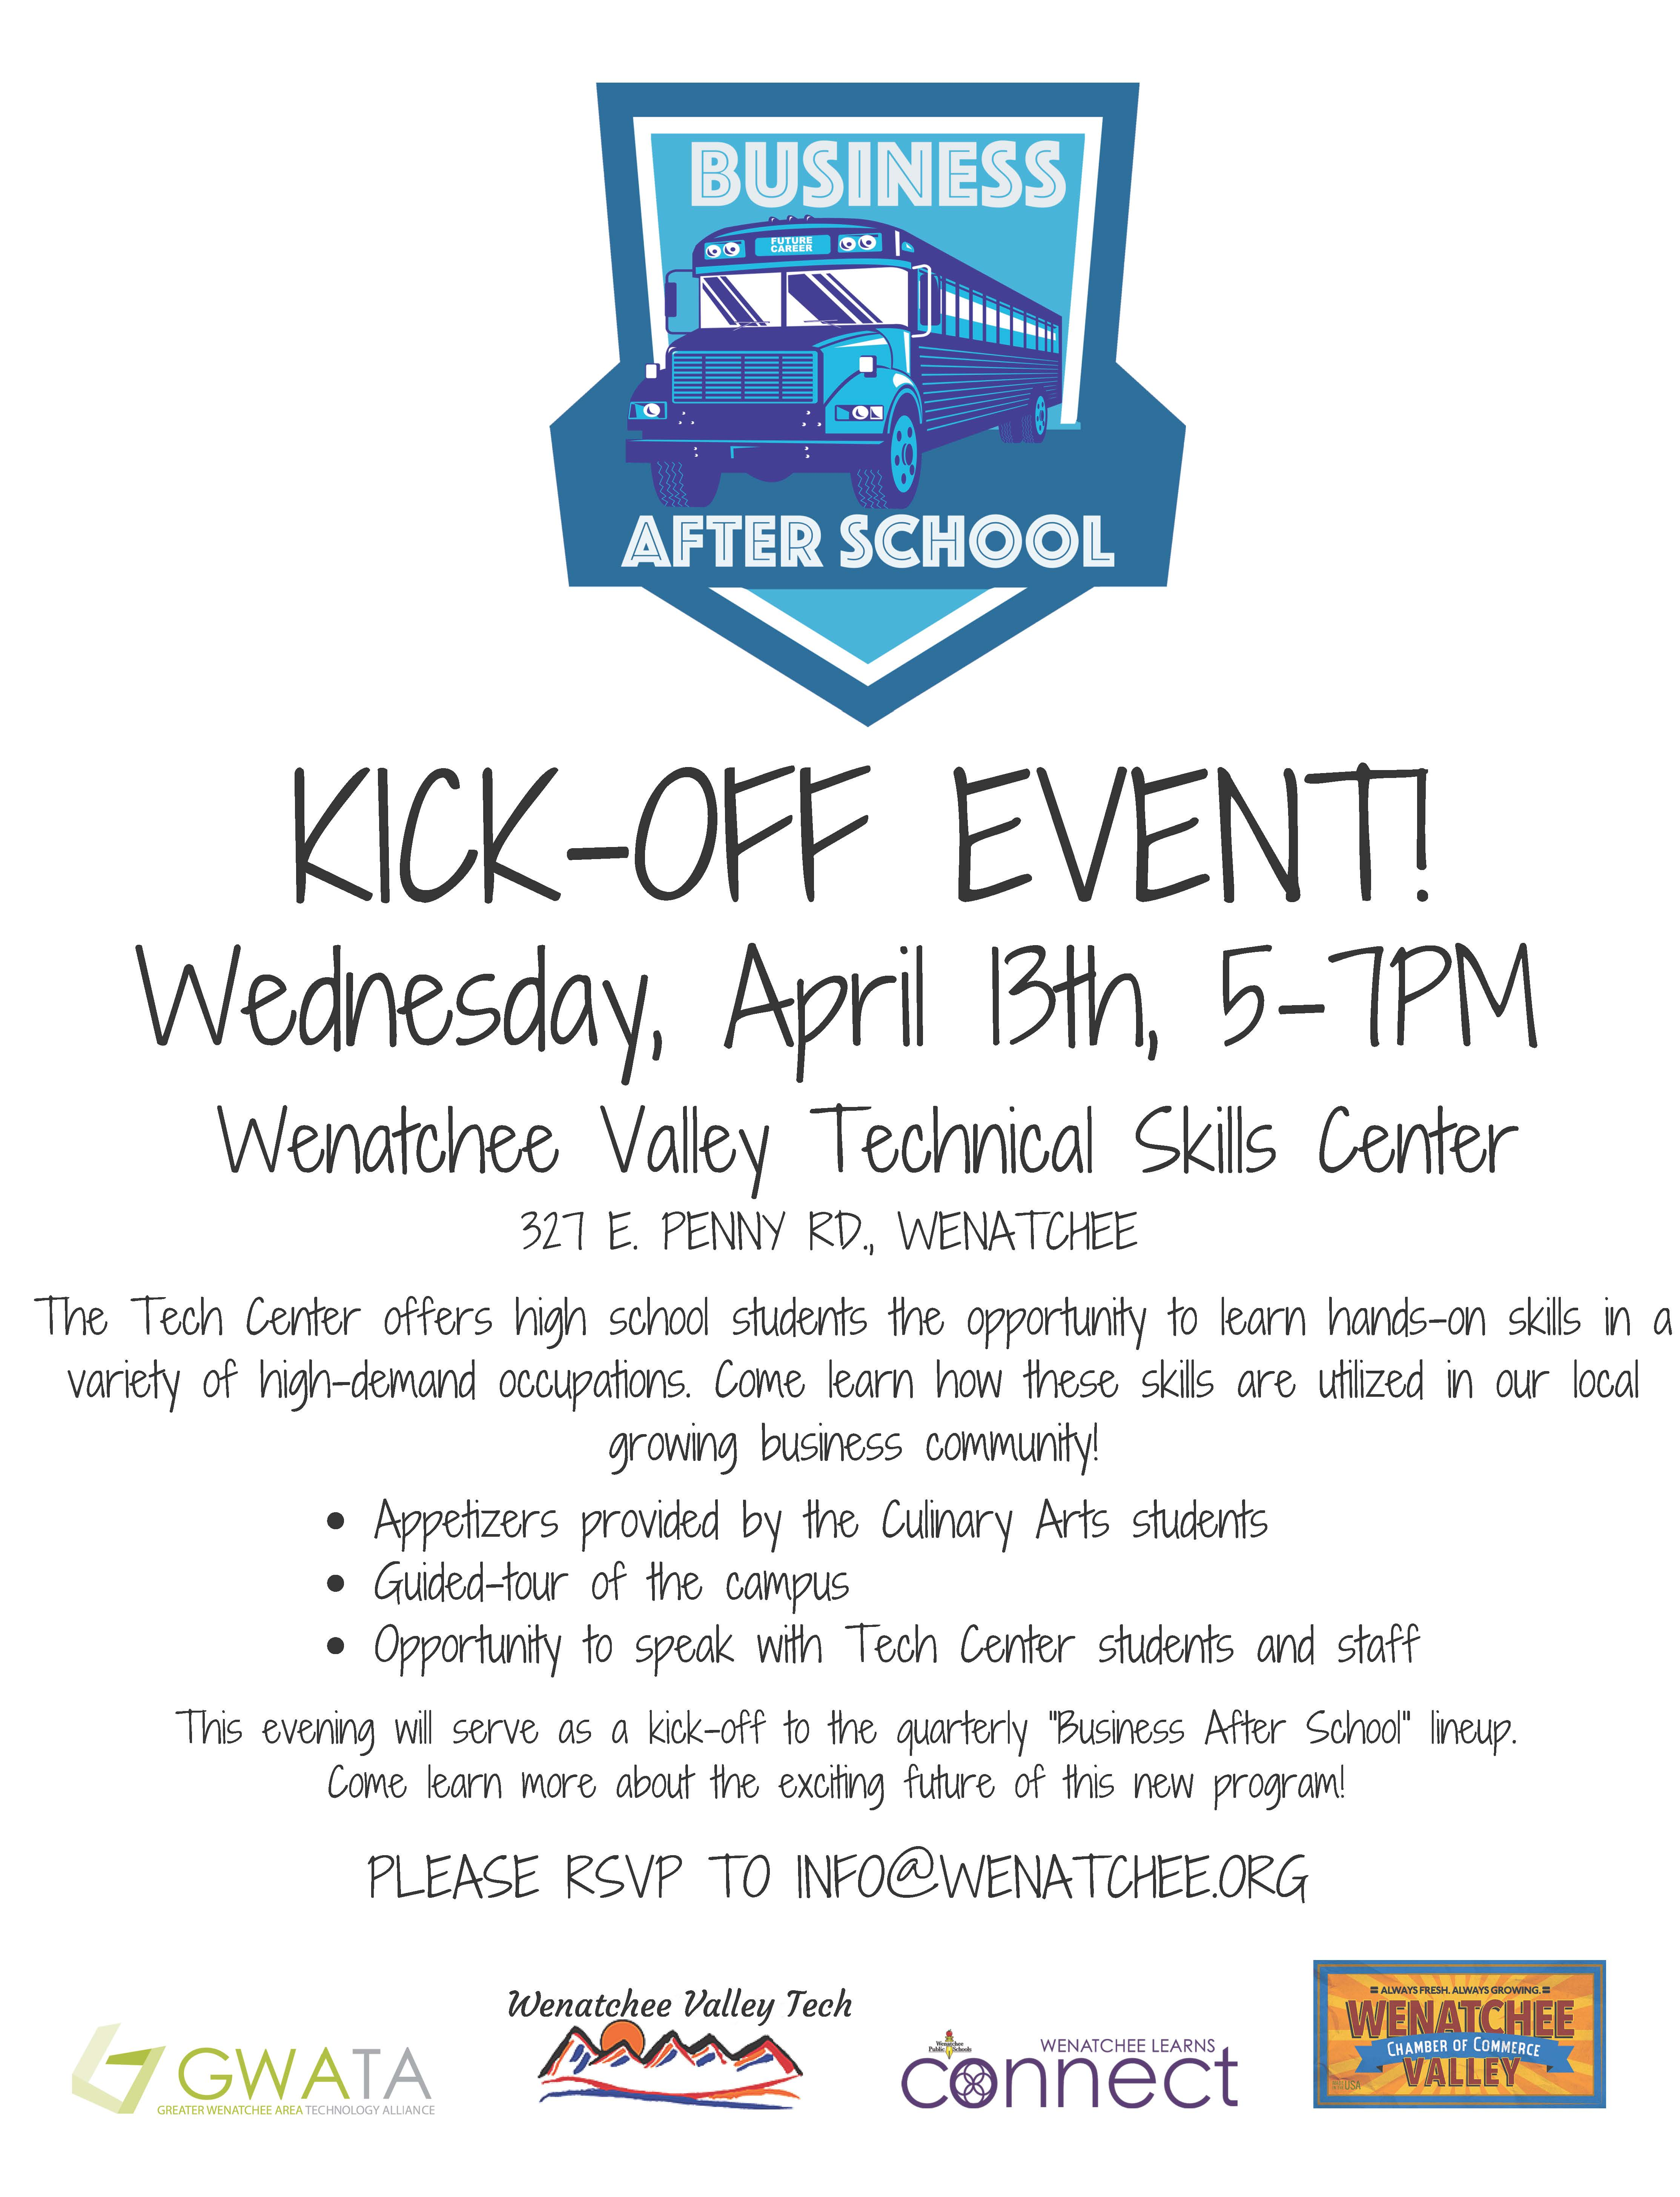 Business after school kick off event flyer